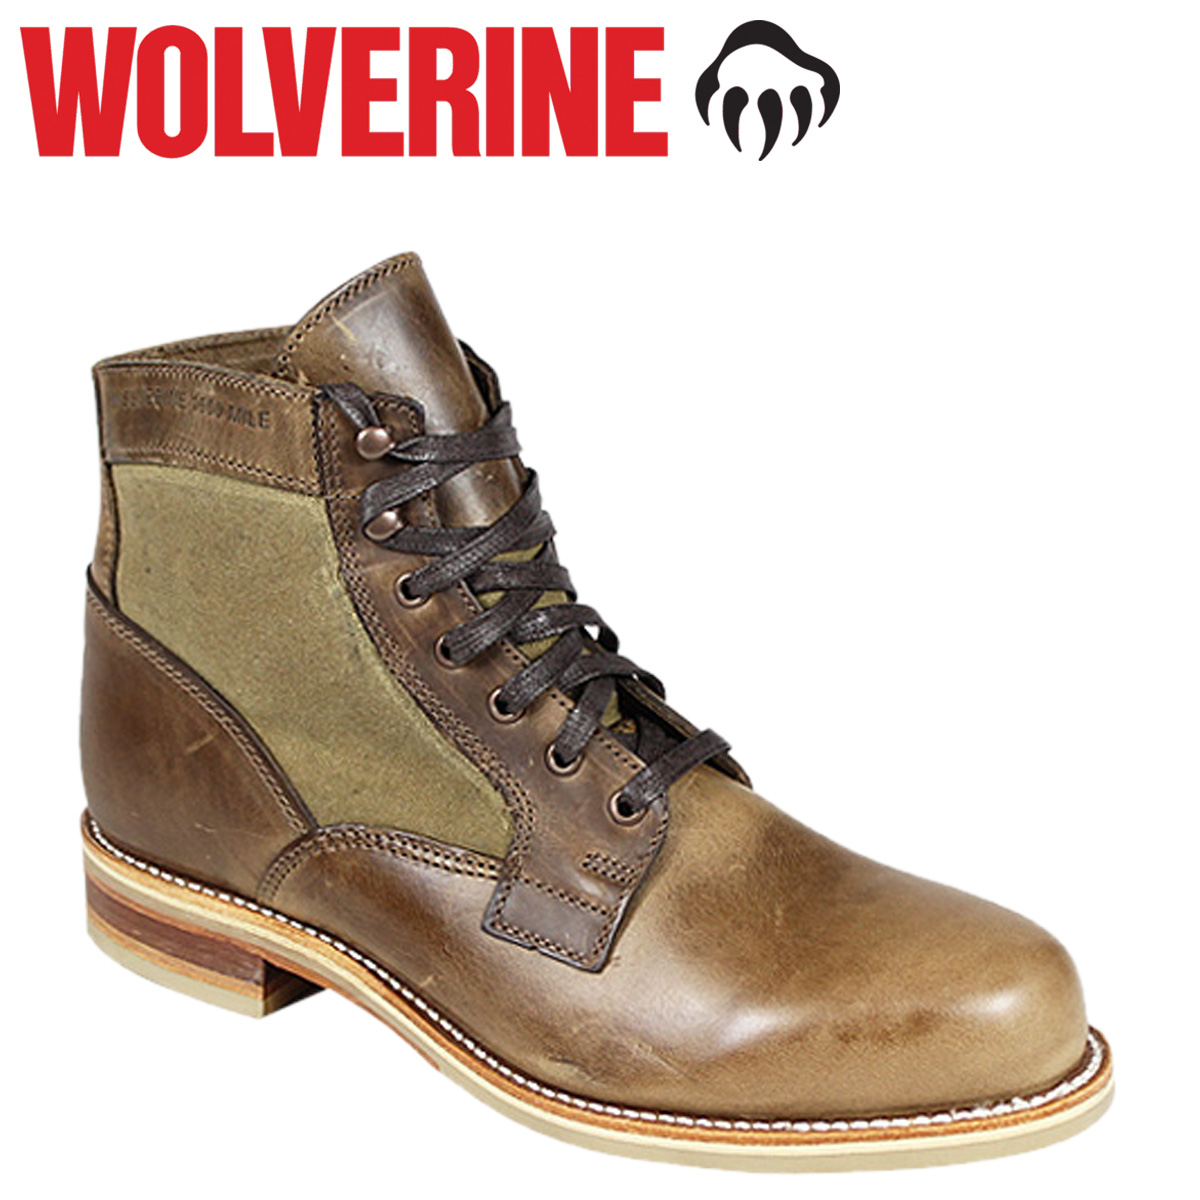 Wolverine WOLVERINE white pine 1000 mile boot WHITEPINE 1000 MILE BOOT D wise leather men's lace-up boots W00402 natural Wolverine [12 / 15 new stock] [regular]